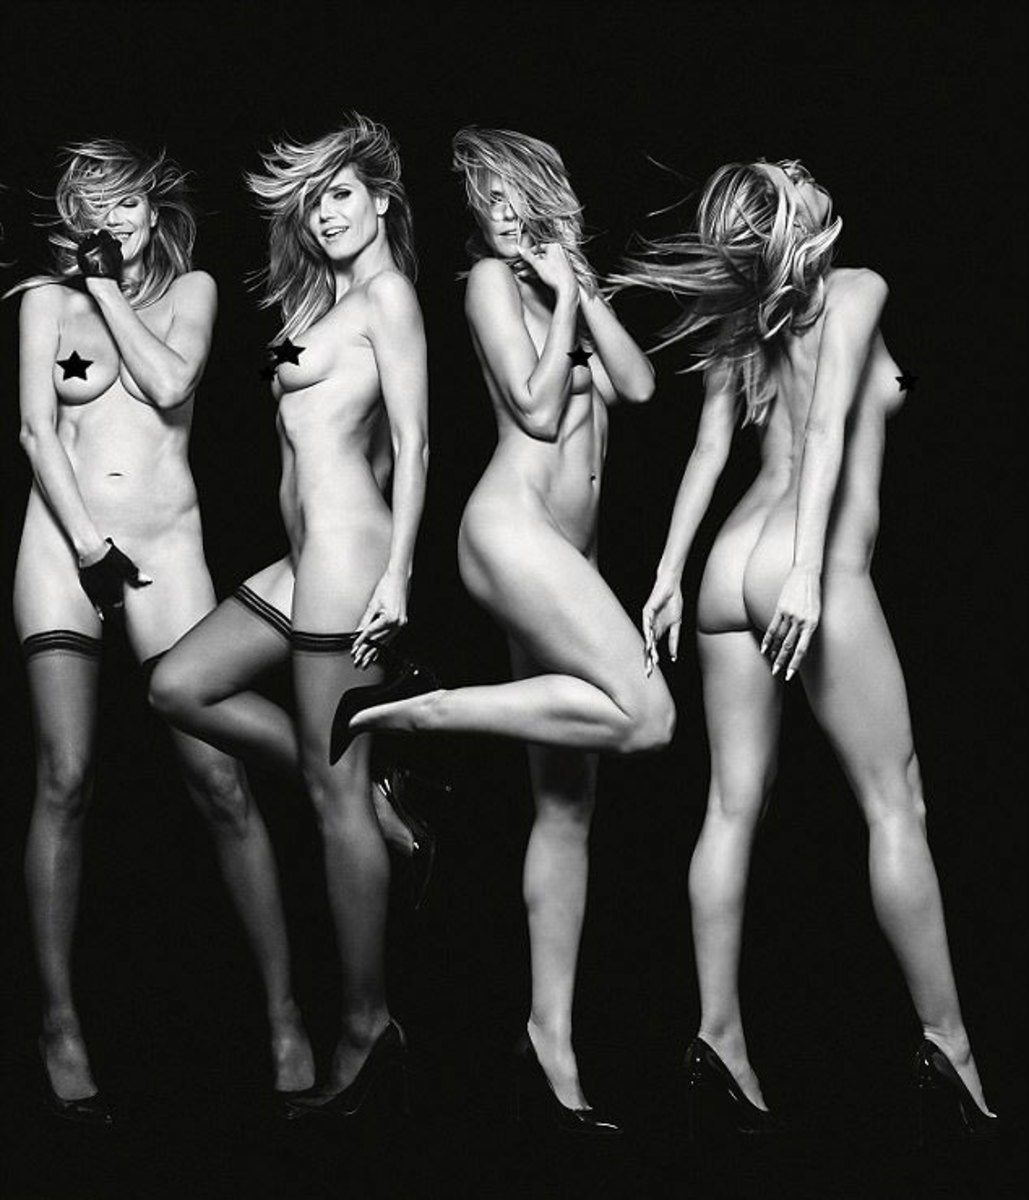 heidi-klum-naked-photo-book-2.jpg